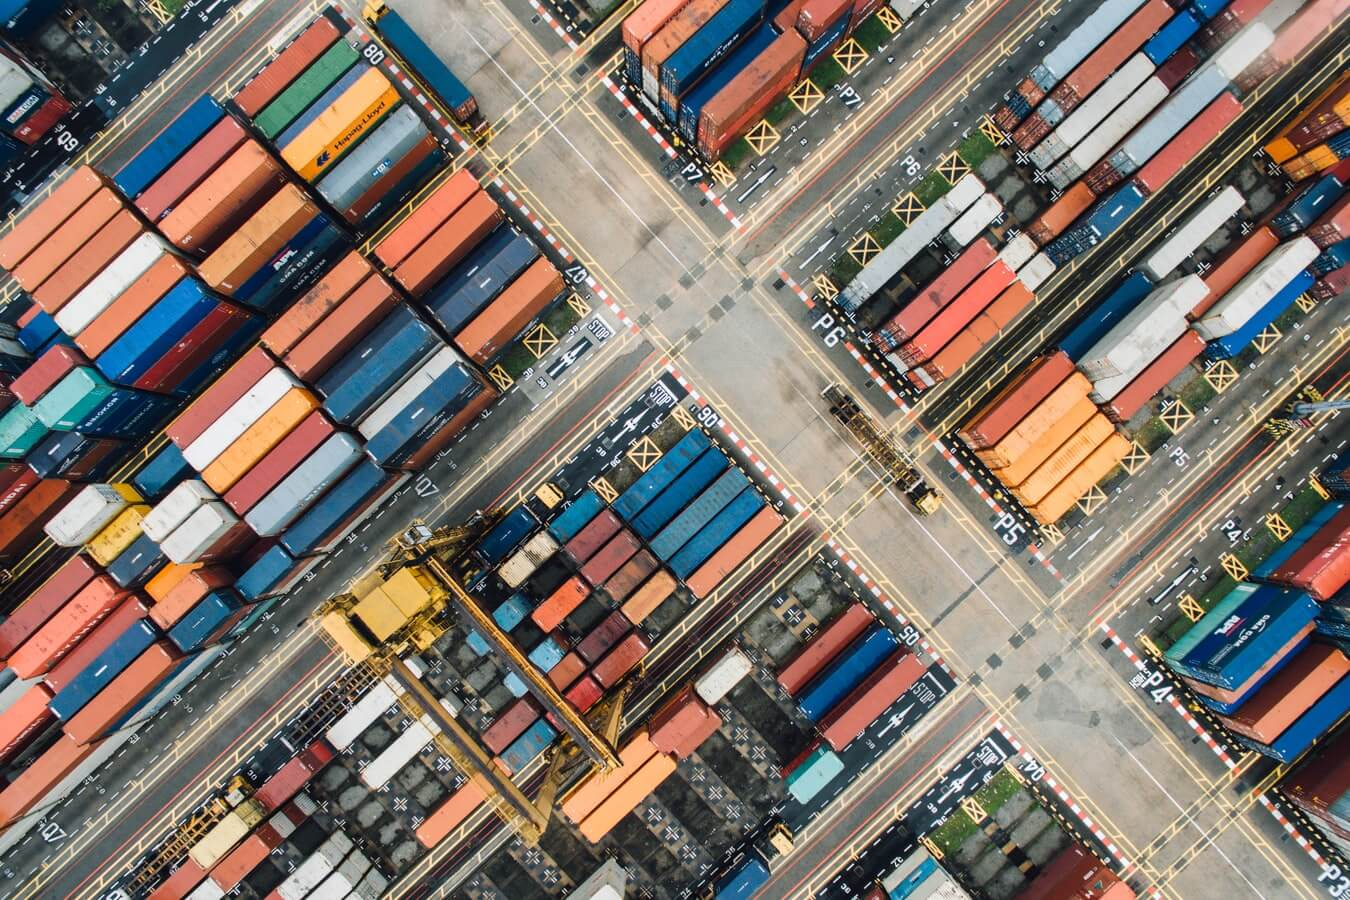 How to set up a Docker container for your MySQL server